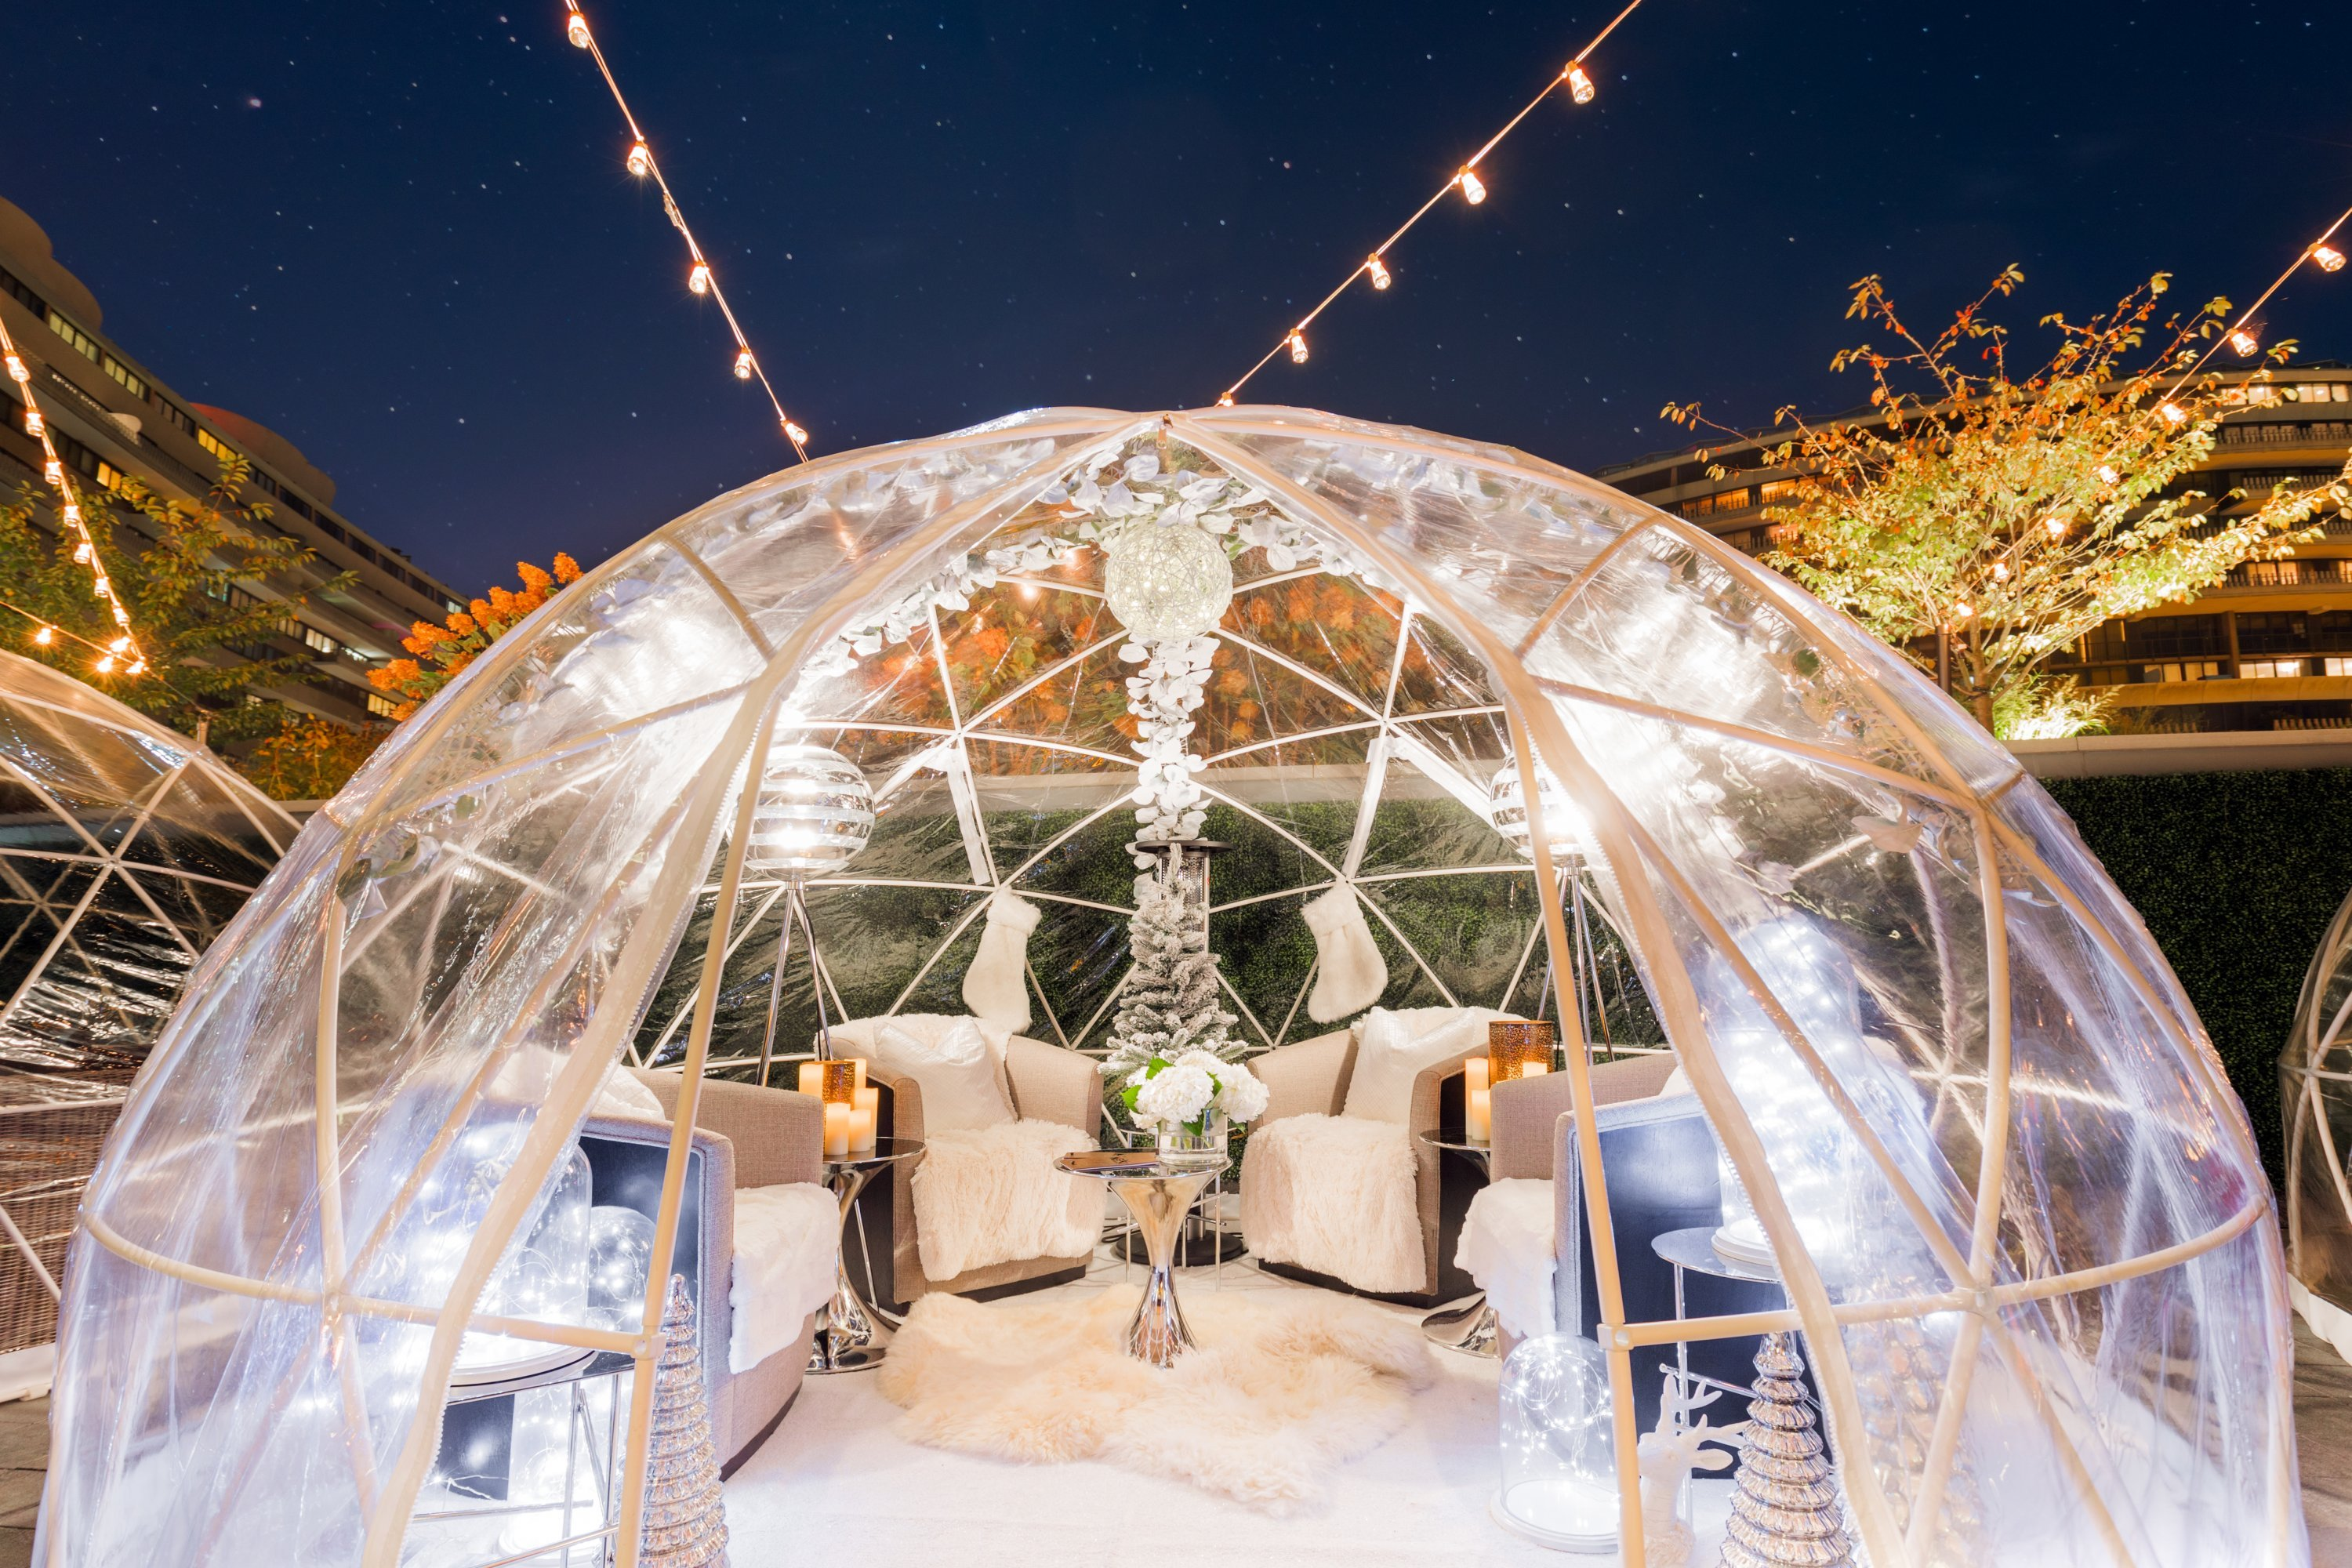 Get cozy in a luxury igloo at the Watergate. Photograph courtesy of the Watergate.